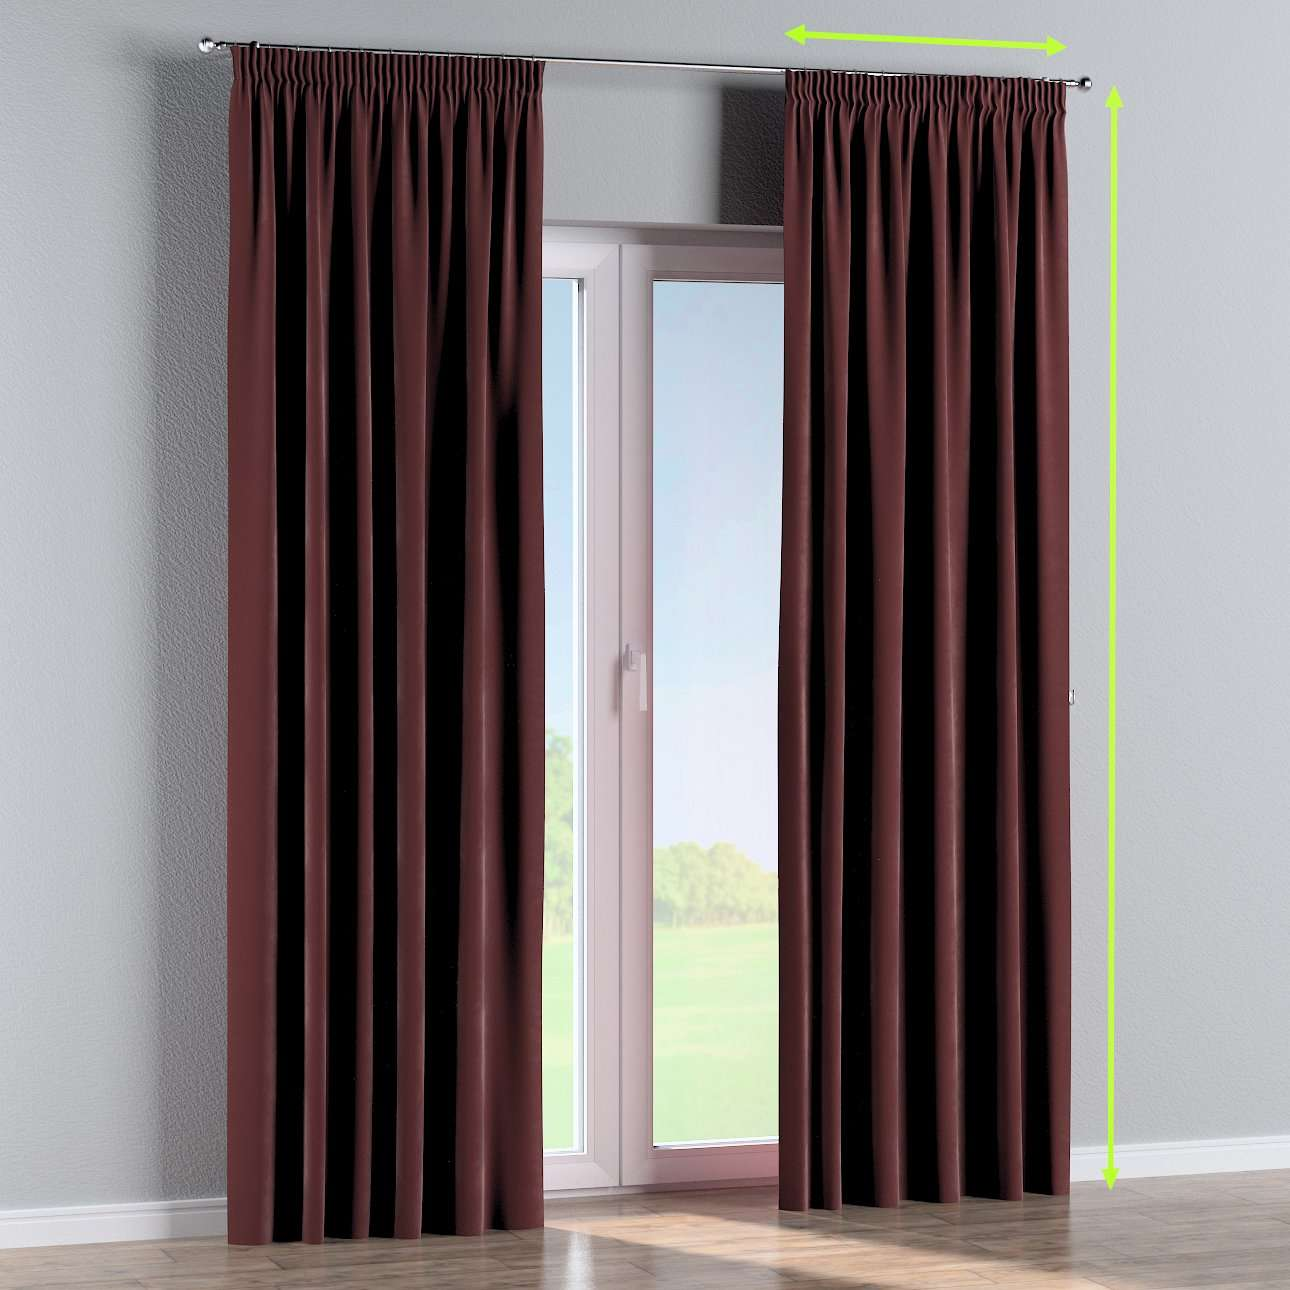 Pencil pleat curtain in collection Velvet, fabric: 704-26